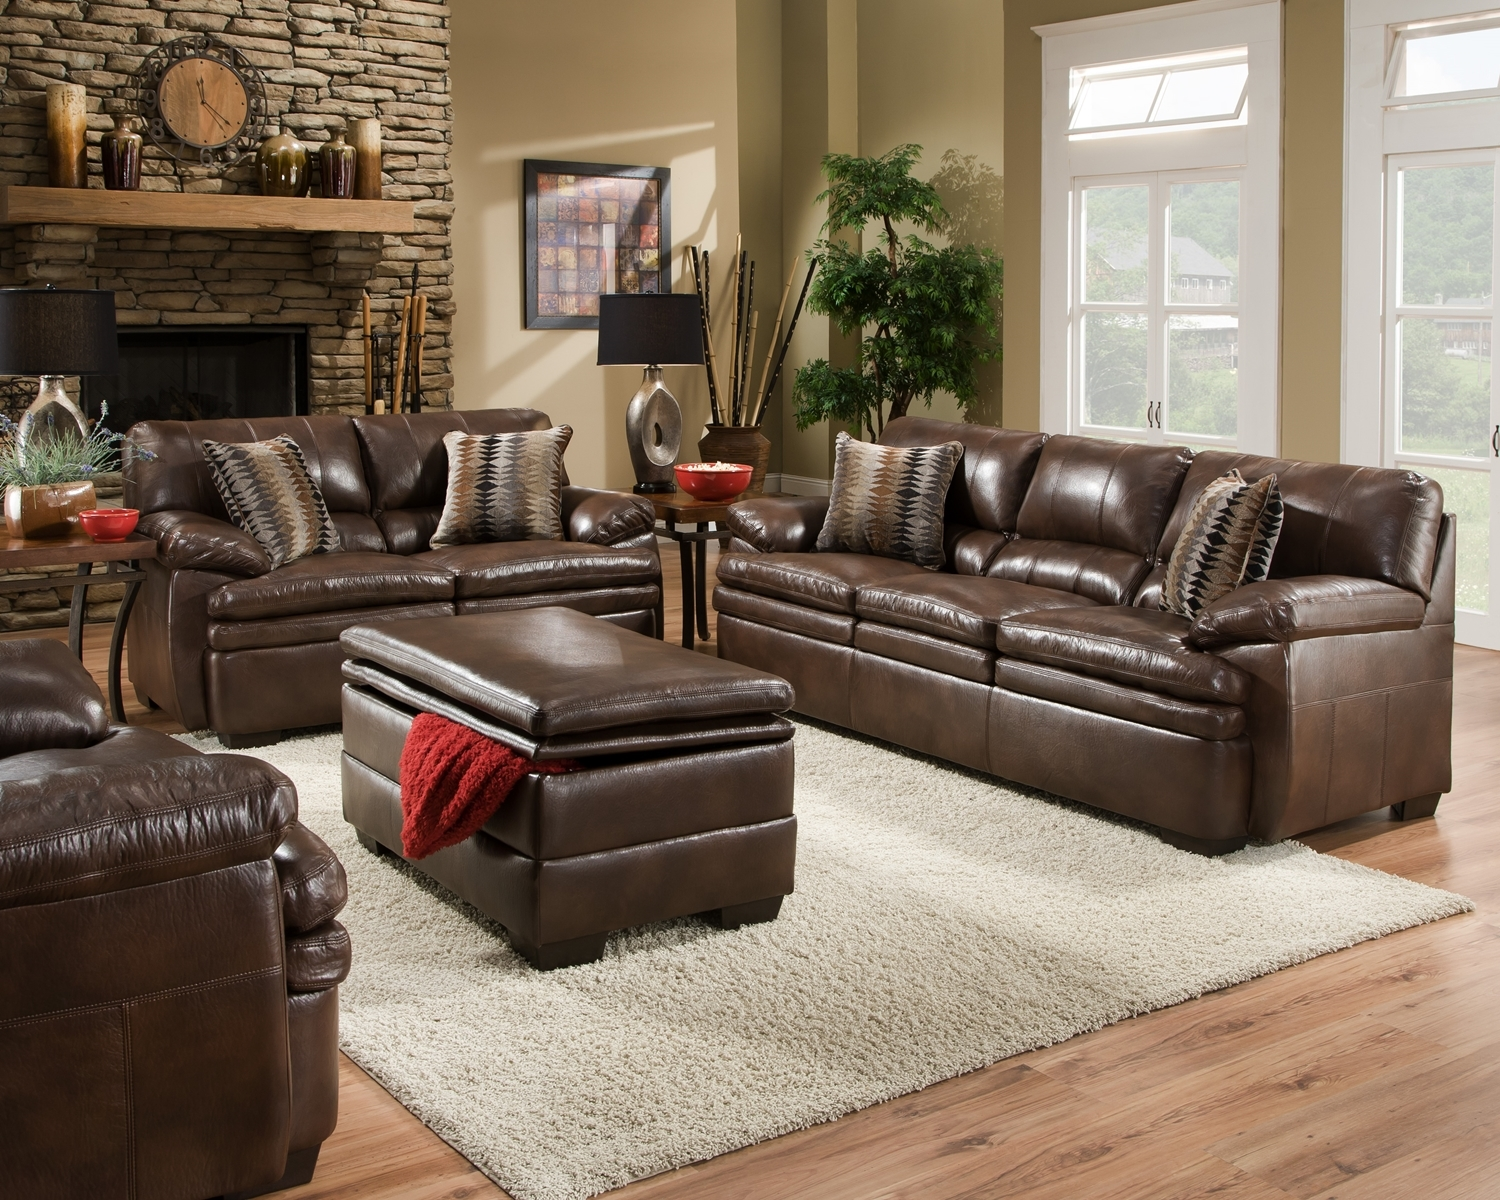 Brown bonded leather sofa set casual living room furniture for Sofa and 2 chairs living room